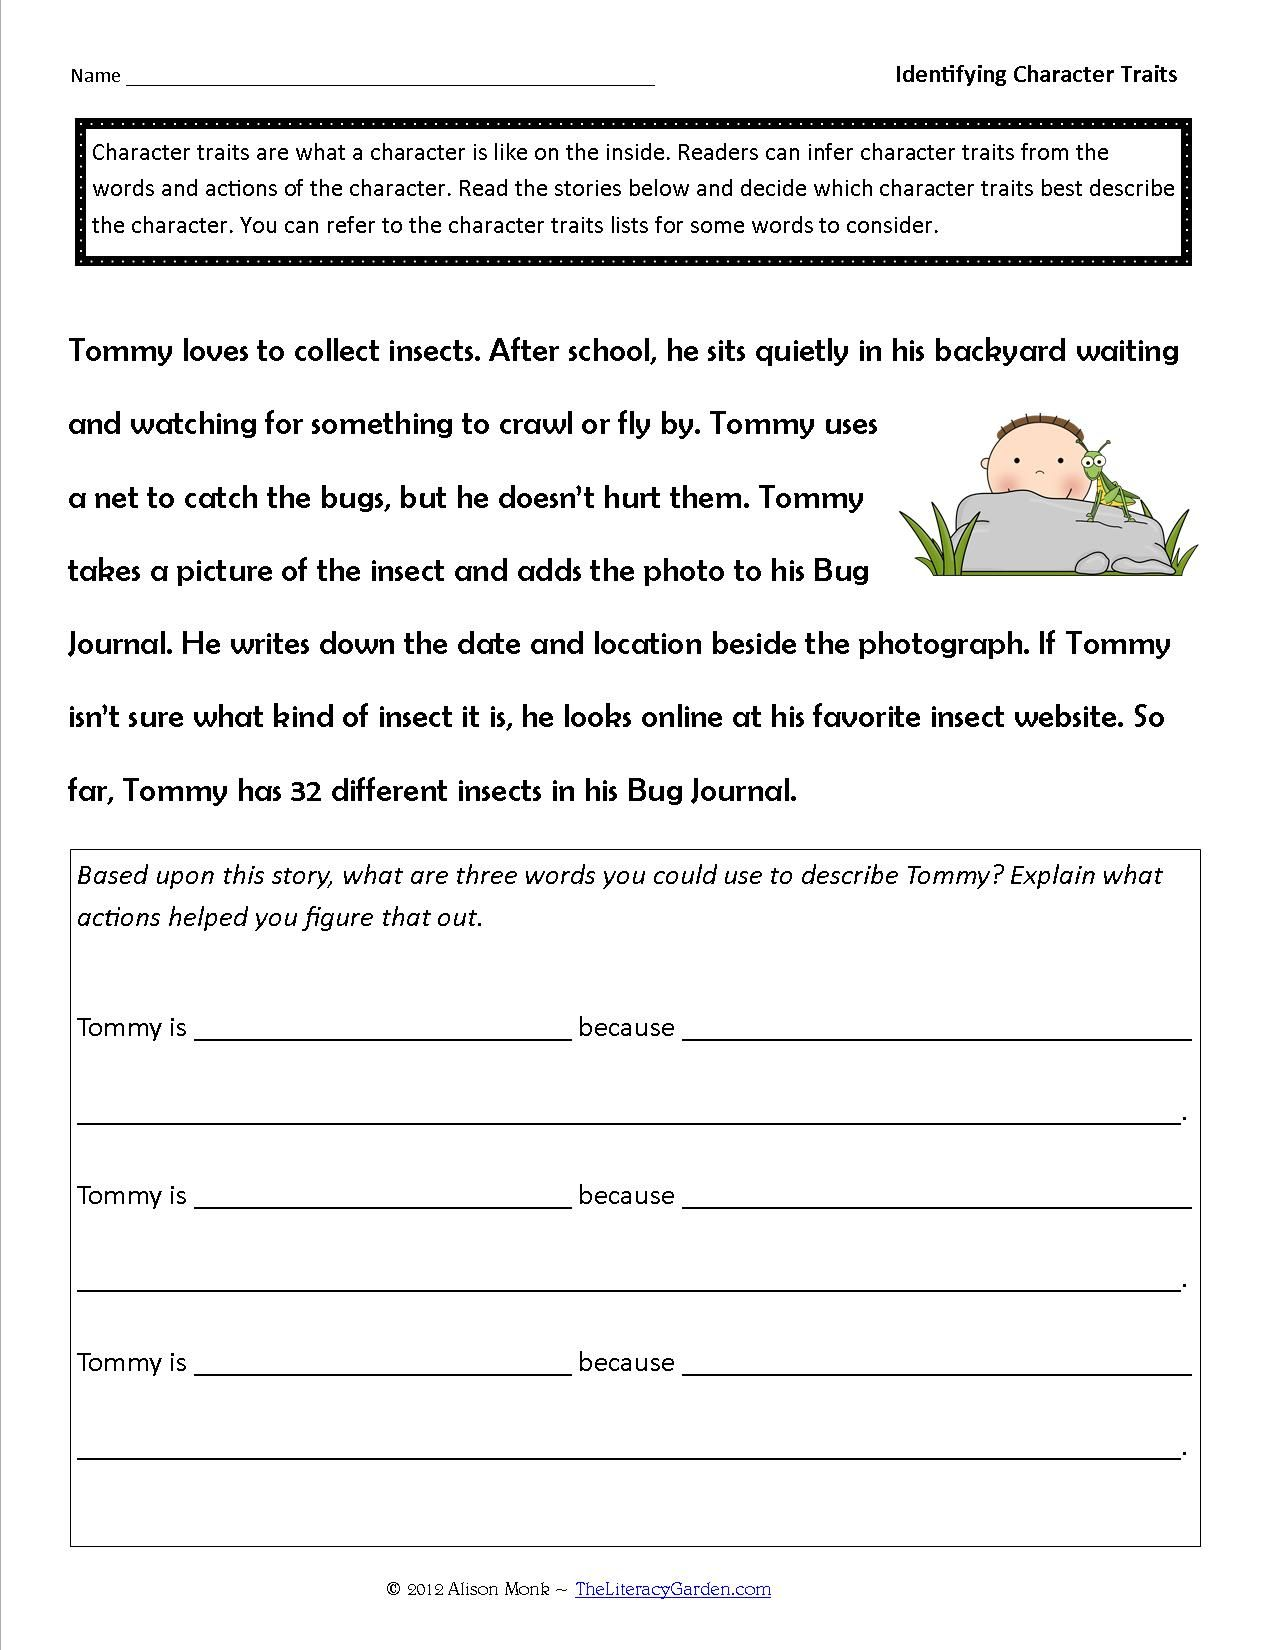 small resolution of CharacterTraitssample2.jpg (1275×1650)   Character trait worksheets